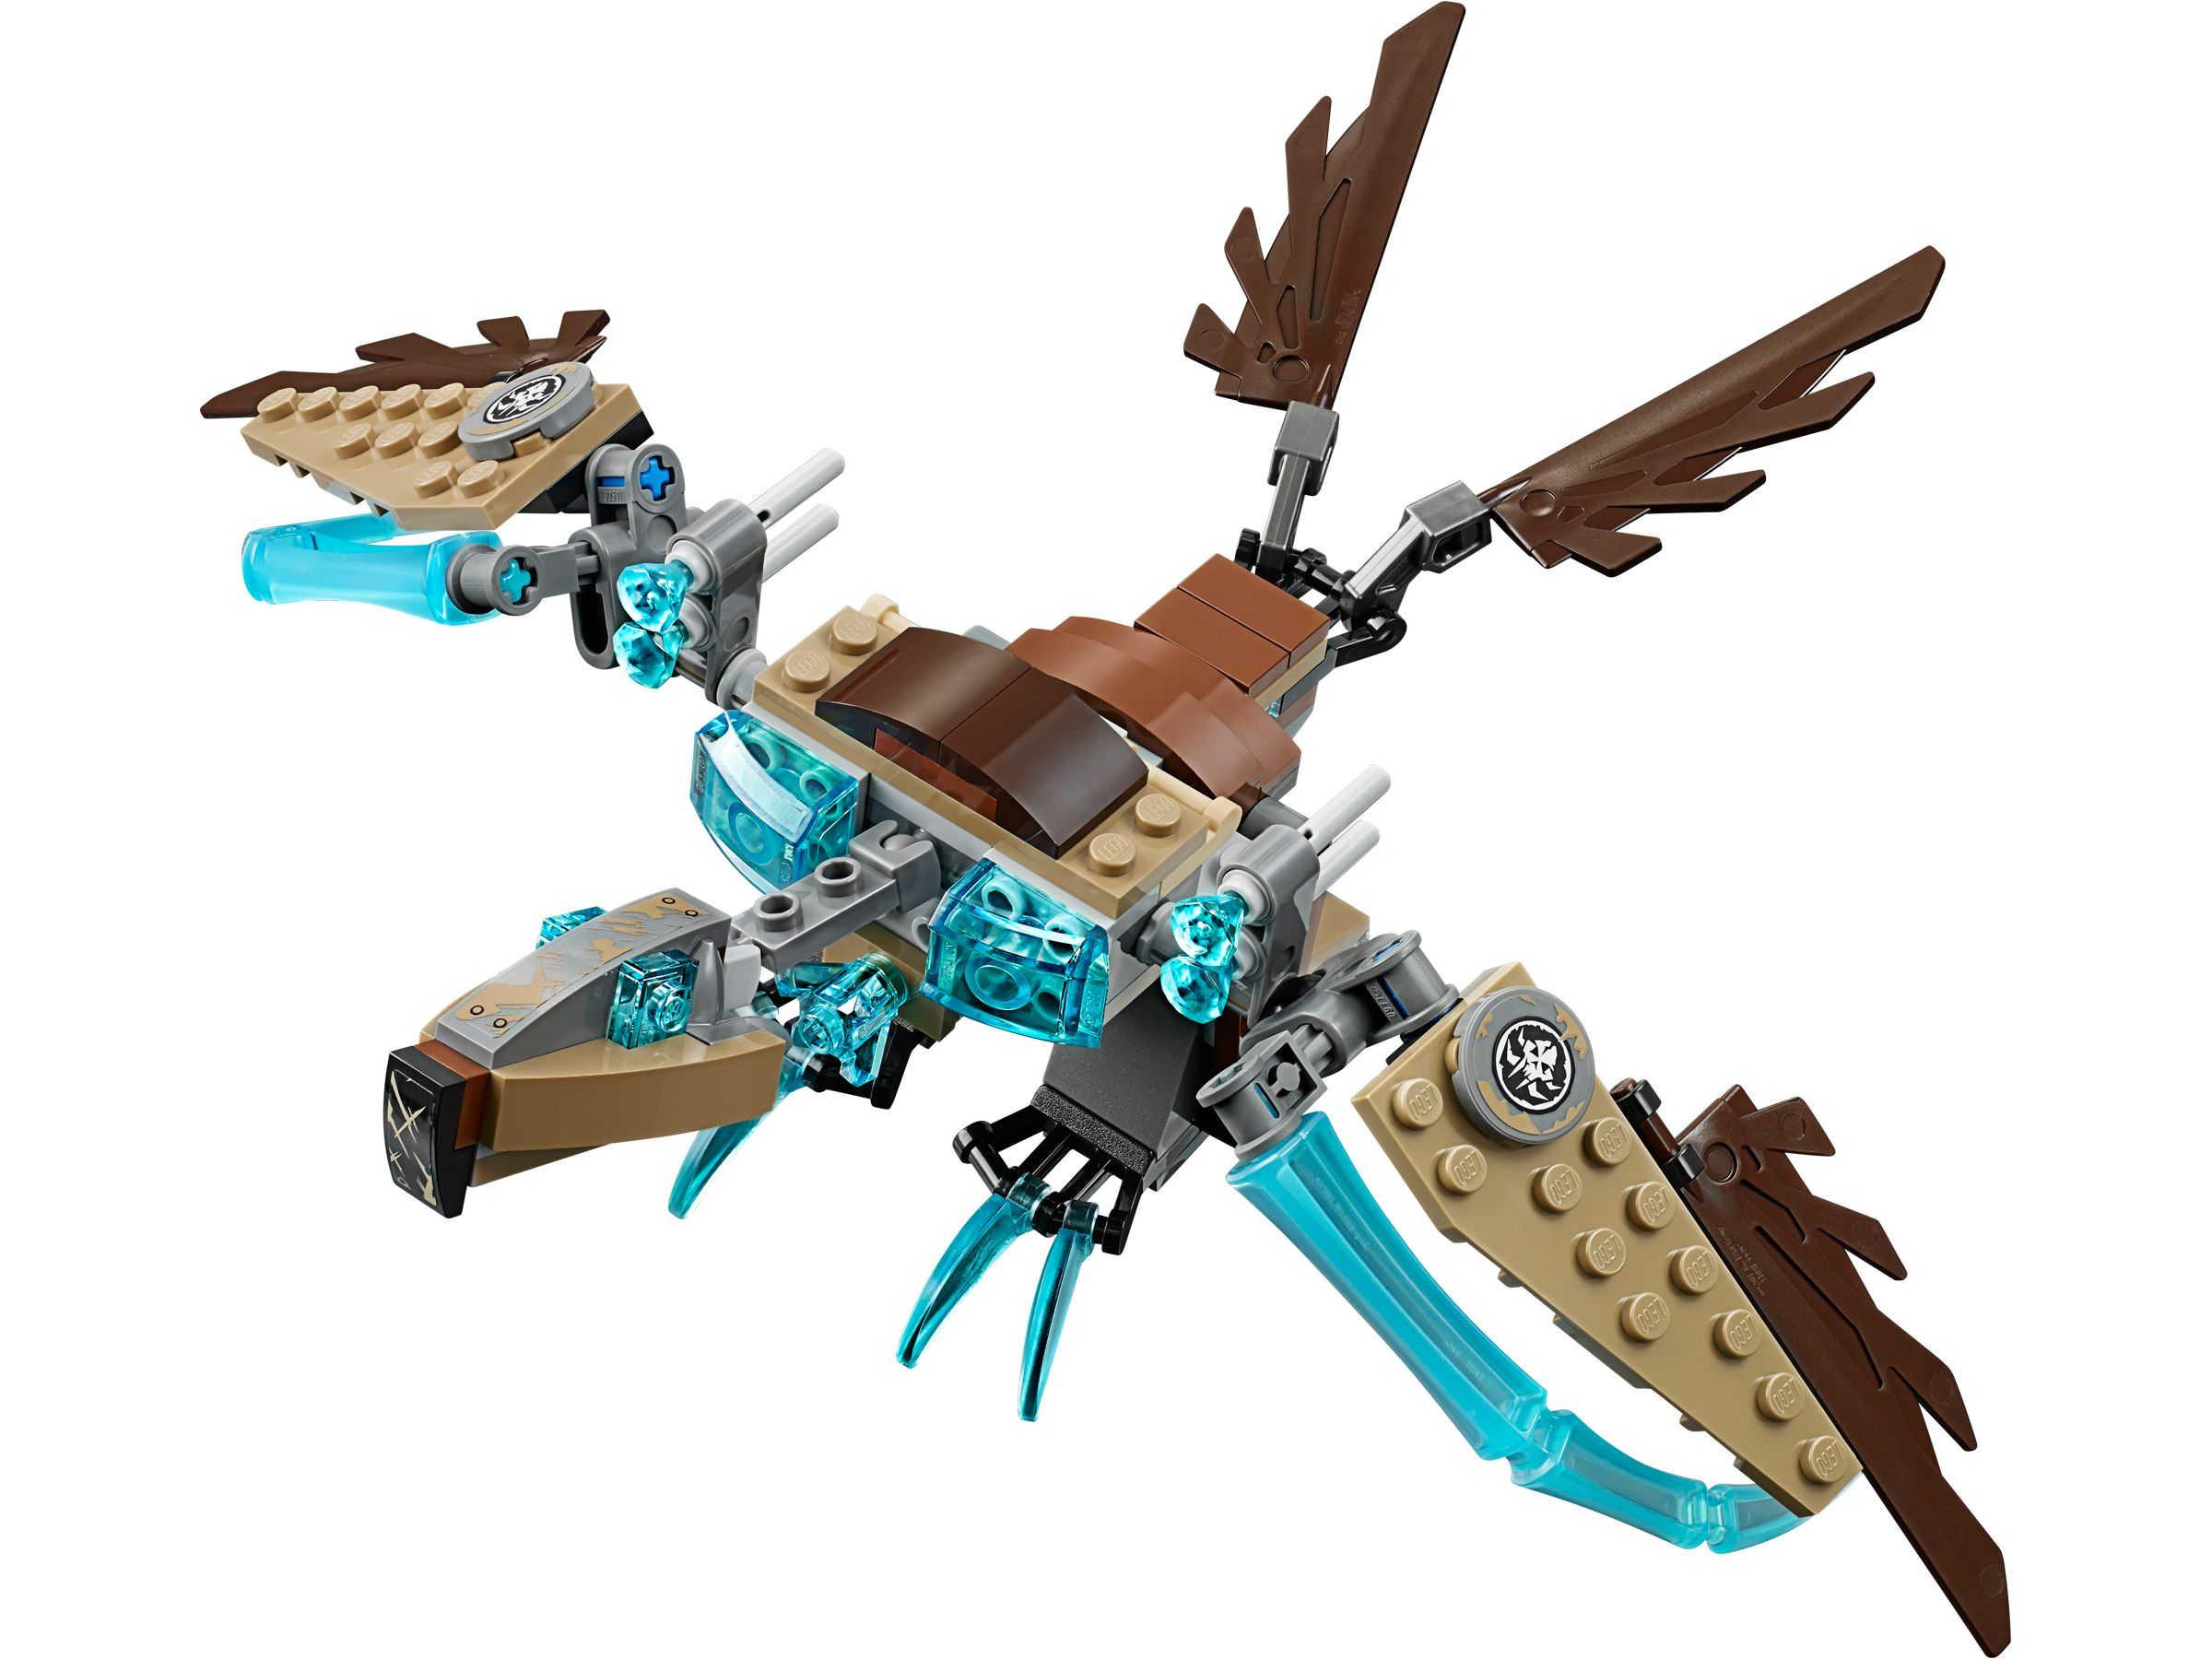 LEGO Legends Of Chima 70141 Vardys Eis-Gleiter LEGO_70141_alt3.jpg